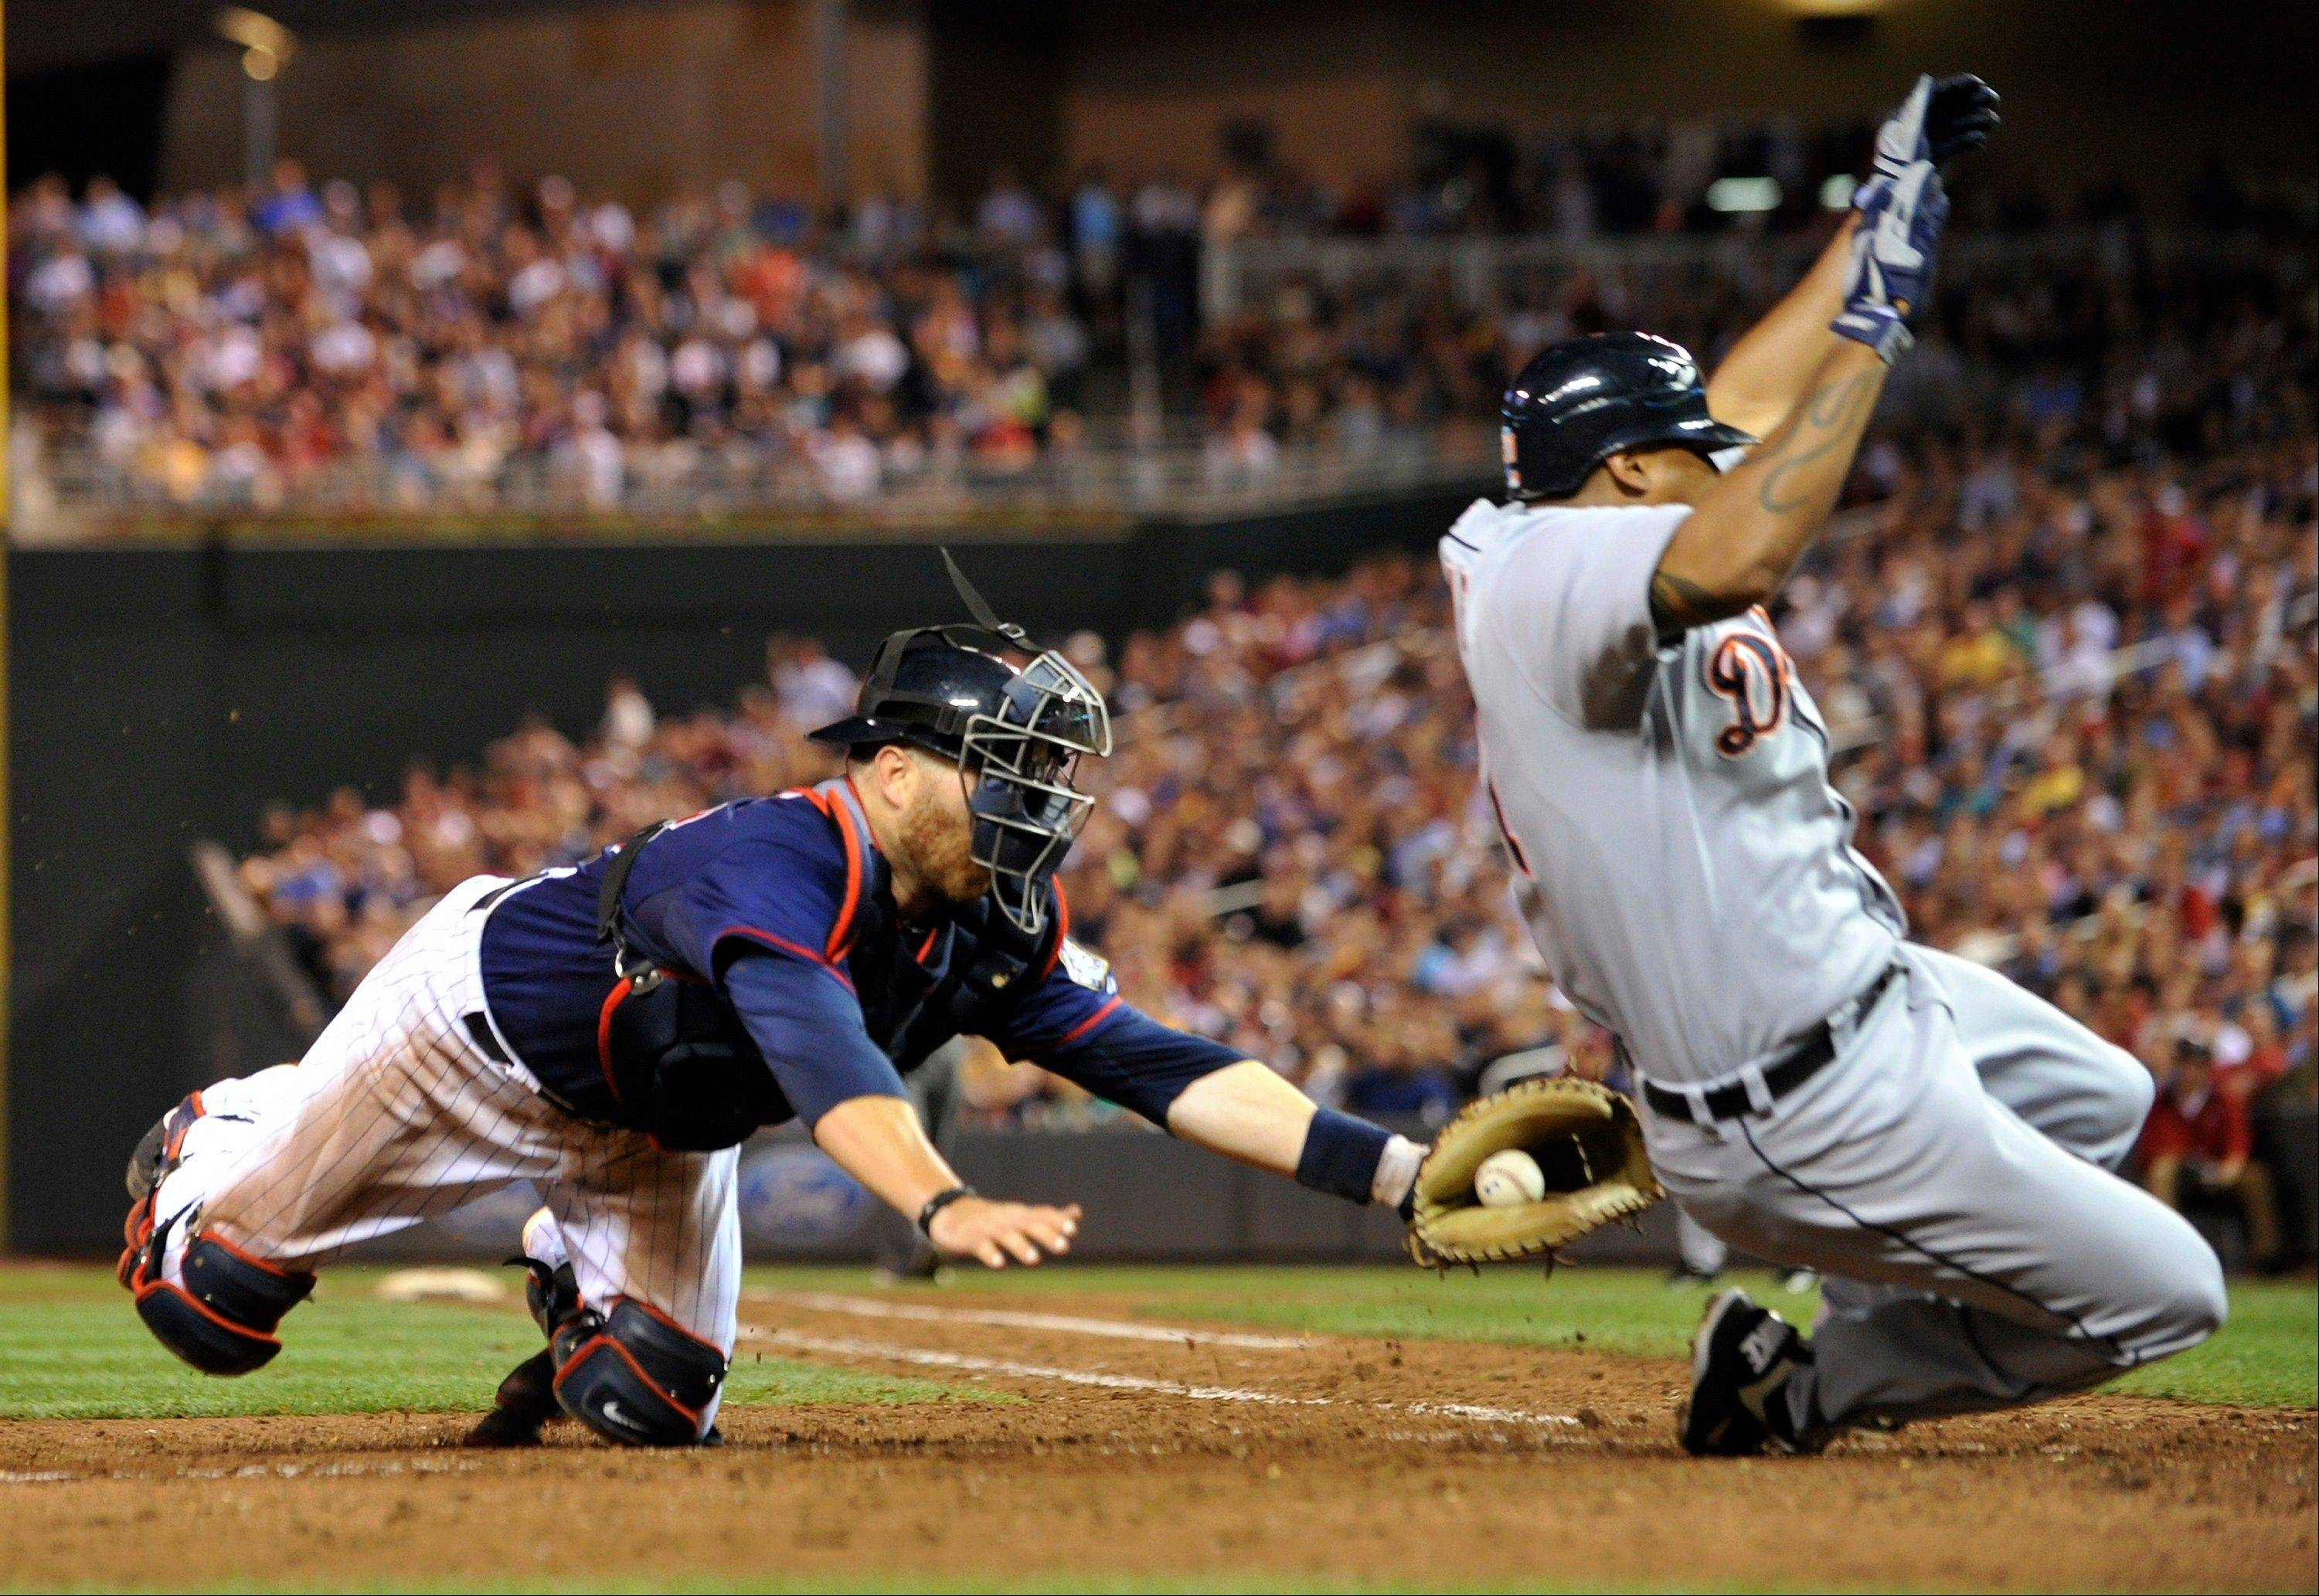 Minnesota Twins catcher Ryan Doumit, left, tags out the Detroit Tigers' Delmon Young as he tries to score from second on a single by Gerald Laird Tuesday during the eighth inning in Minneapolis.